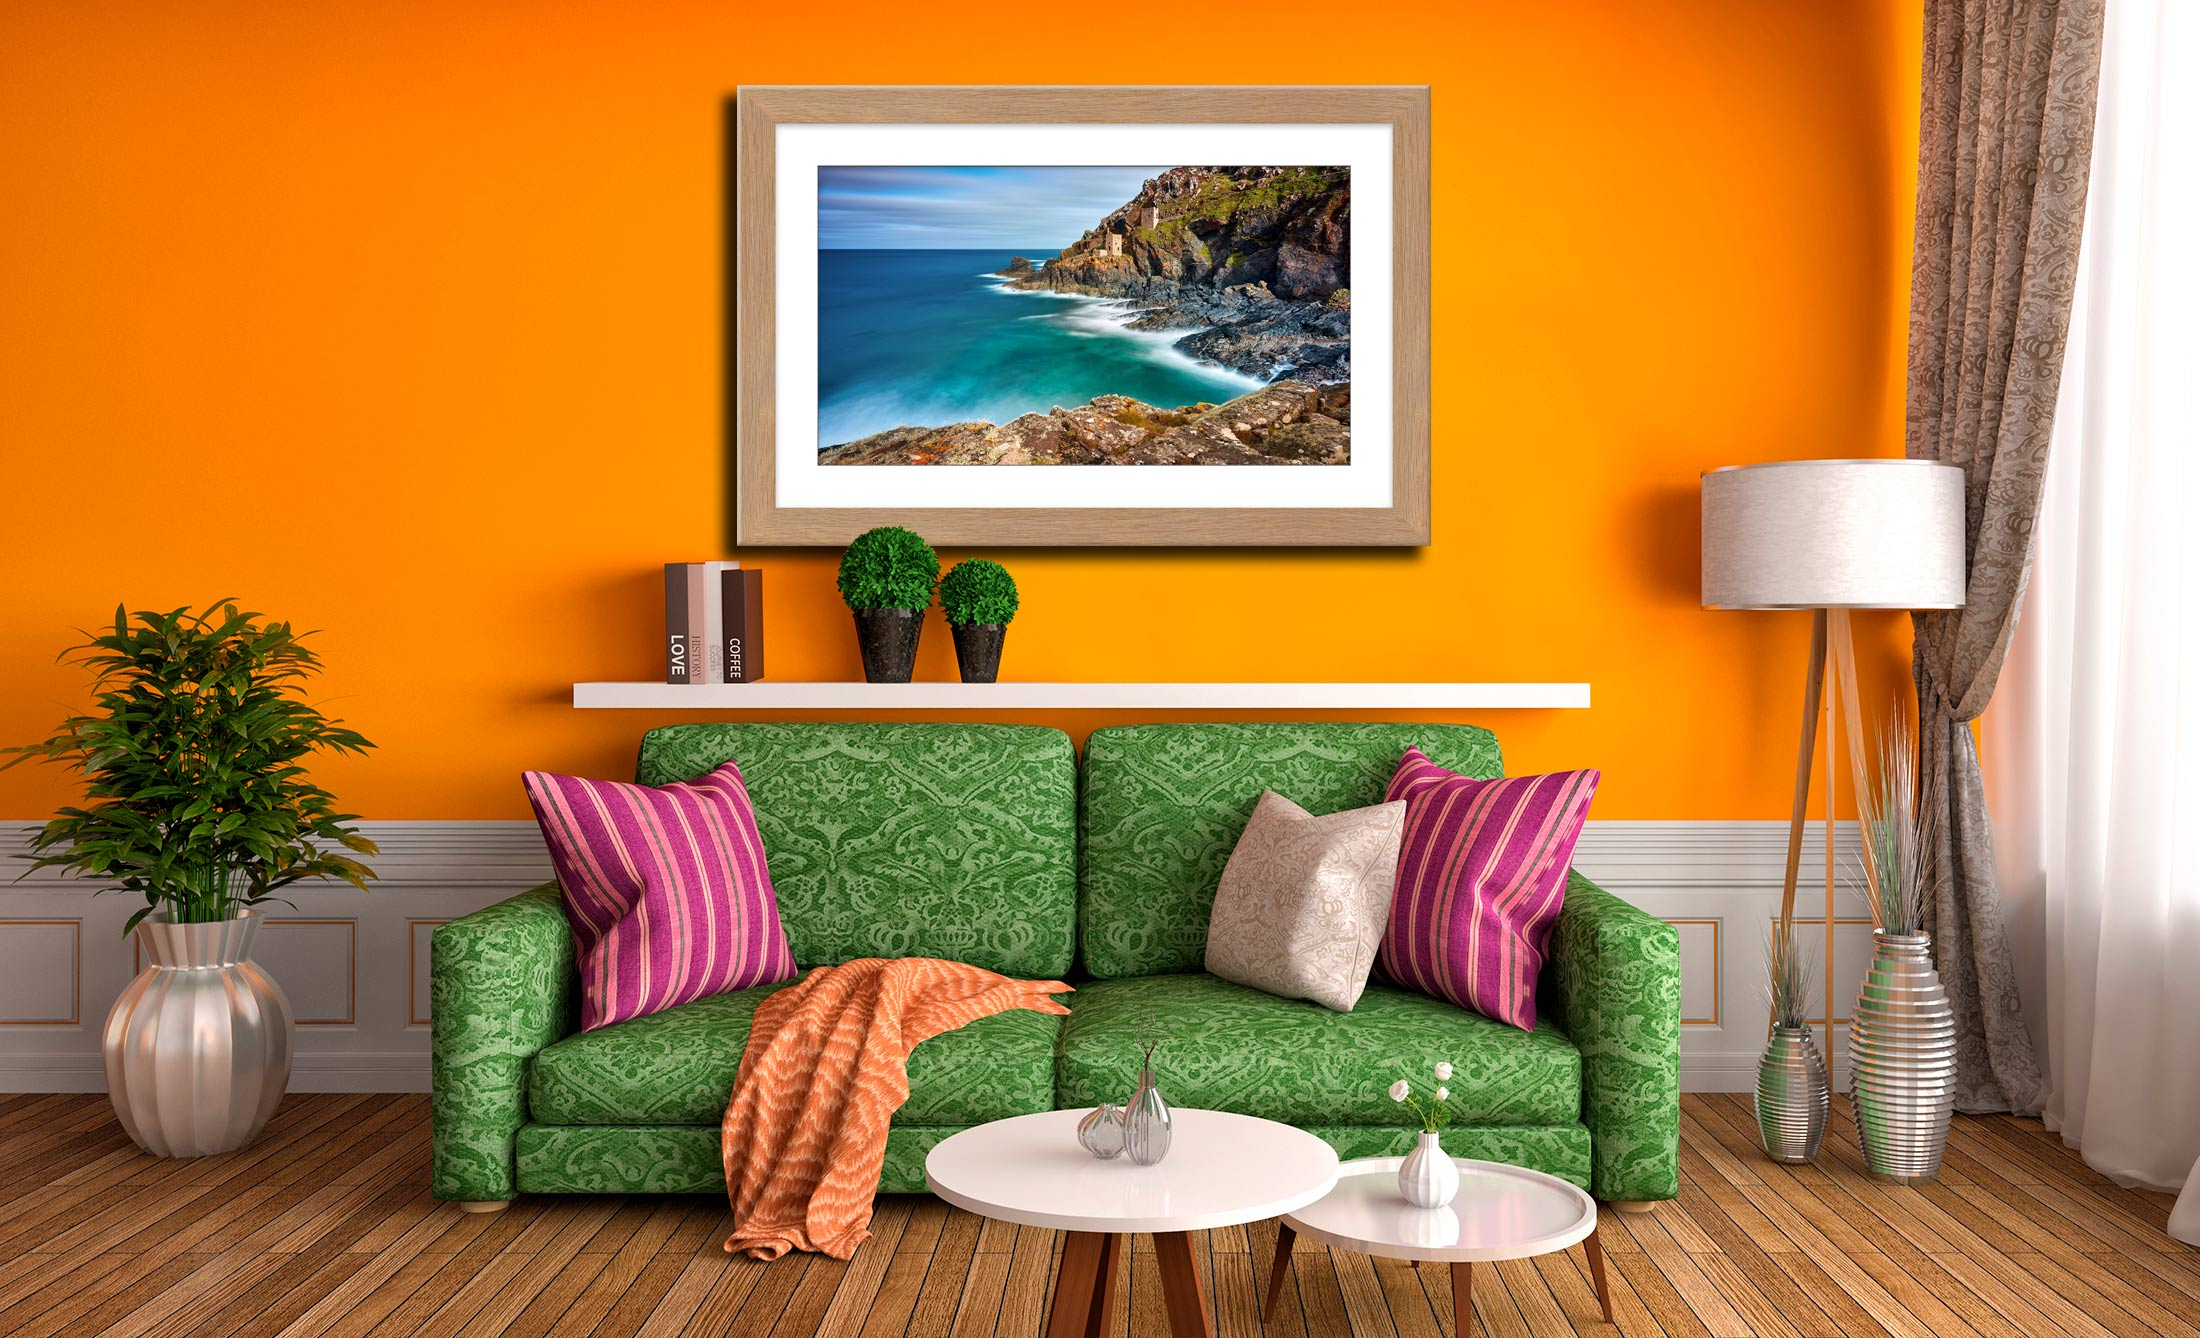 Green Ocean at Botallack - Framed Print with Mount on Wall